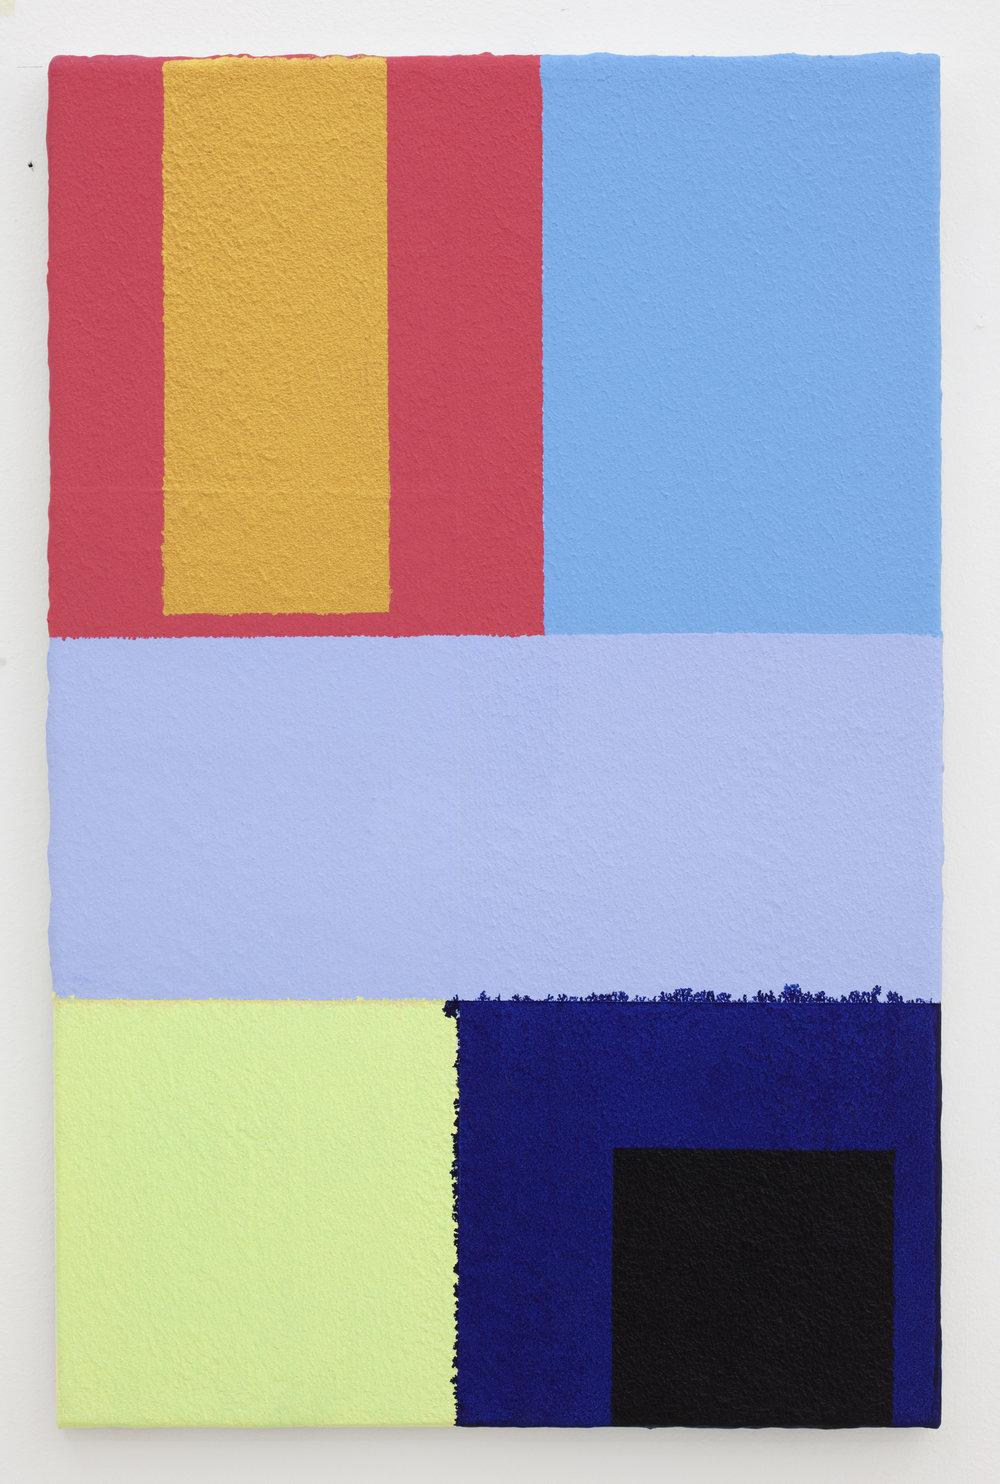 - PRICE: € (EUR) 1.480. Bodil Nielsen. Untitled. 2012. Acrylic on canvas. 60 x 45 cm.